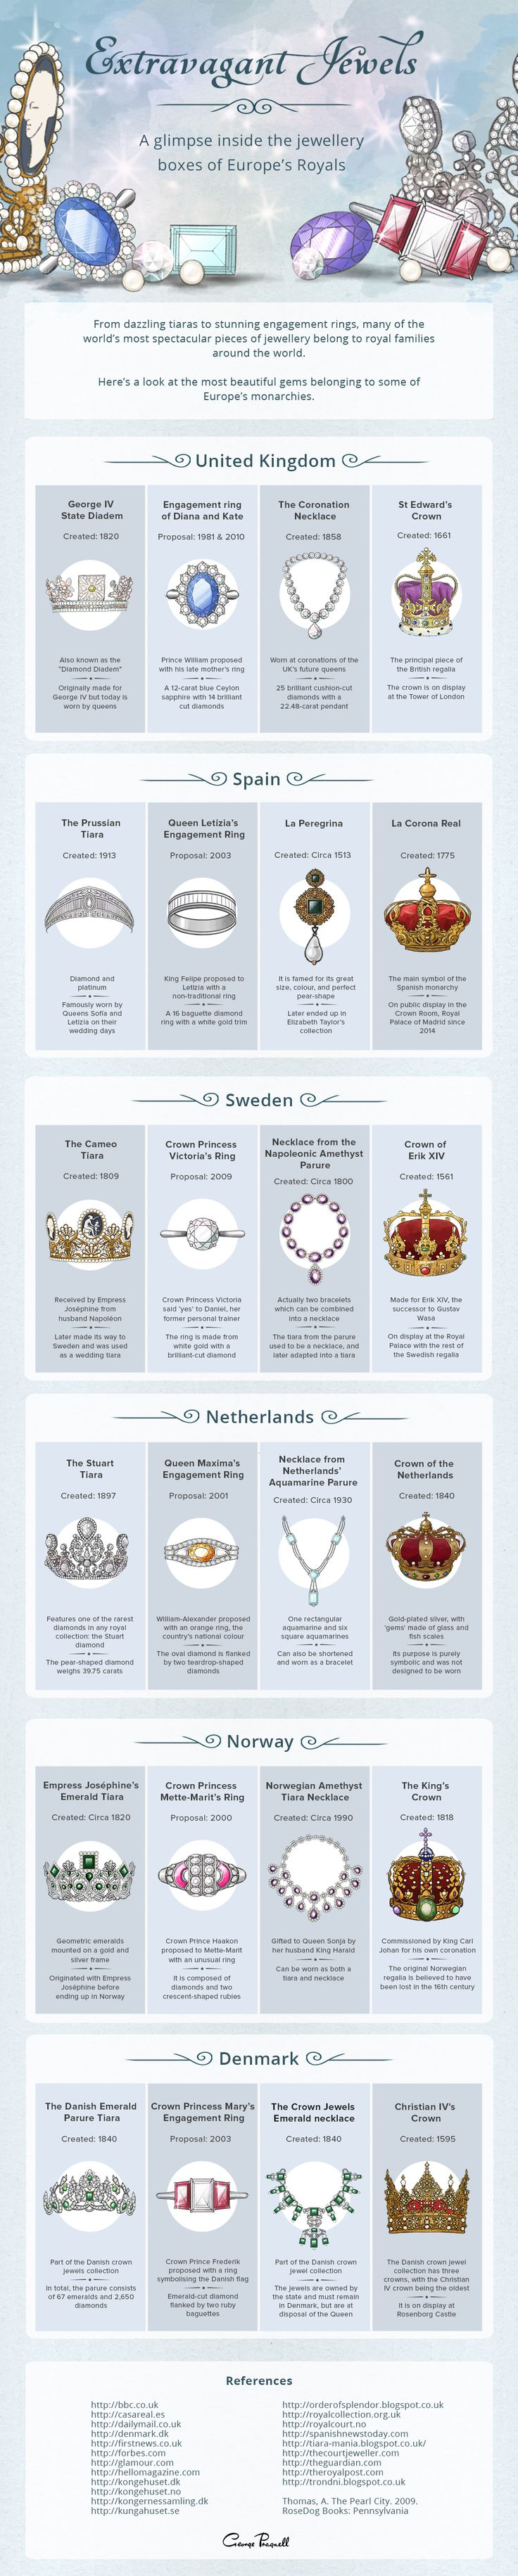 royal wedding information facts